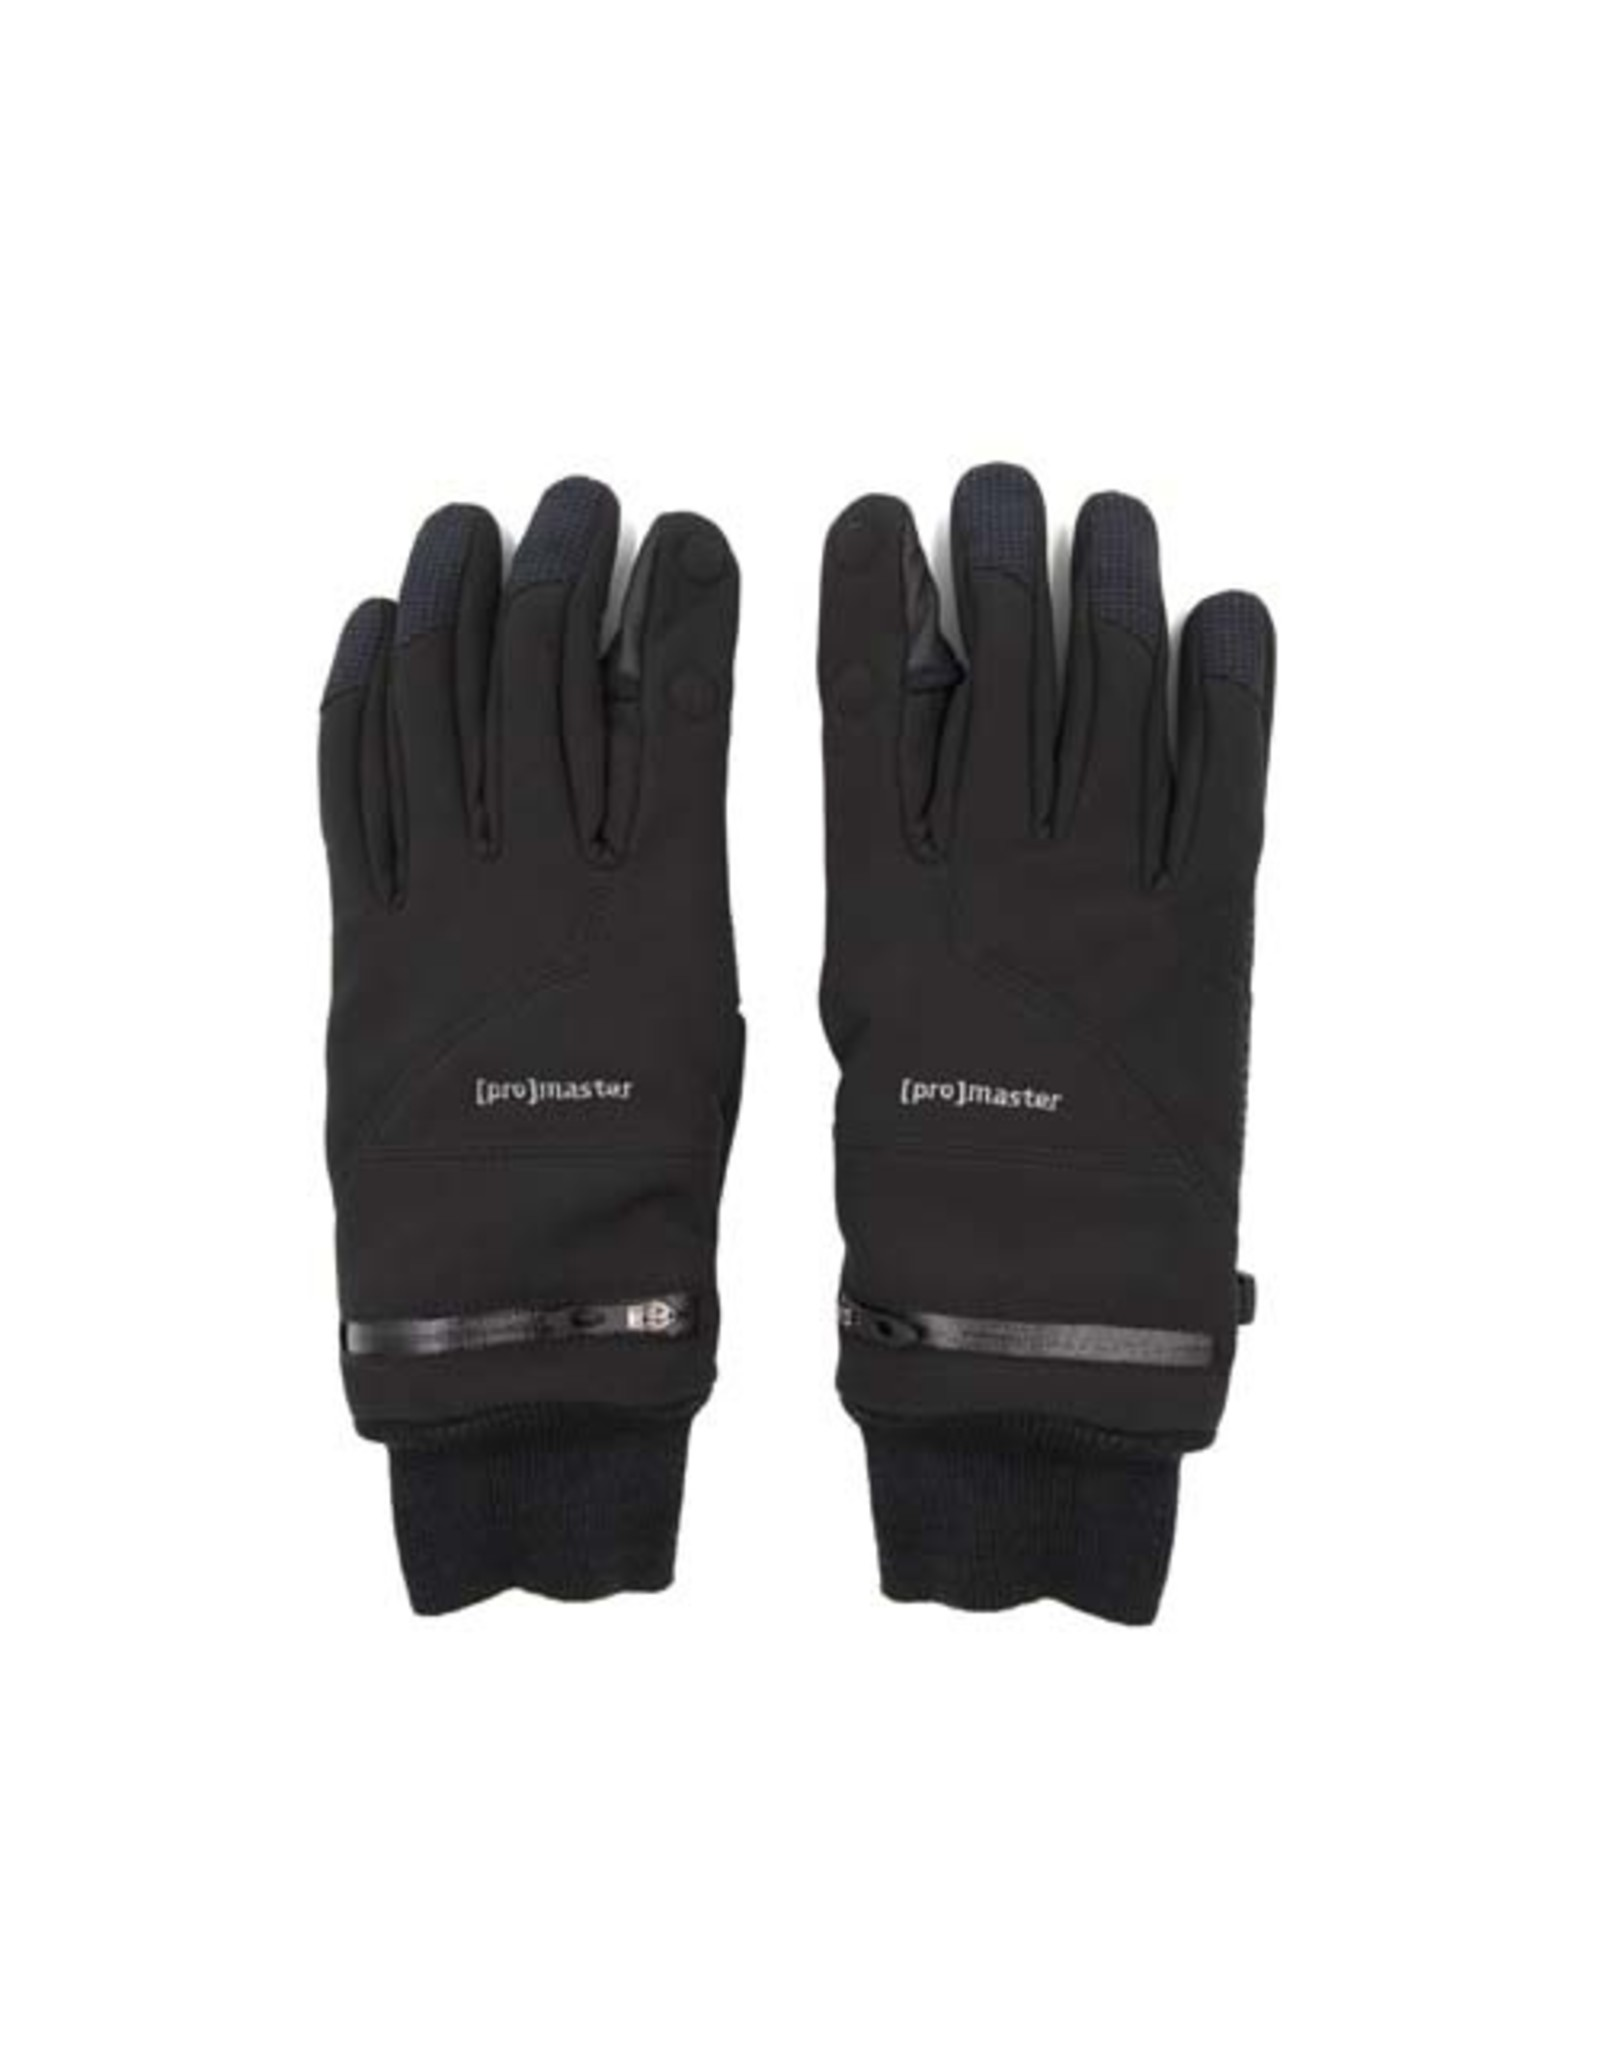 ProMaster Gloves - V2 - XX Large - Black